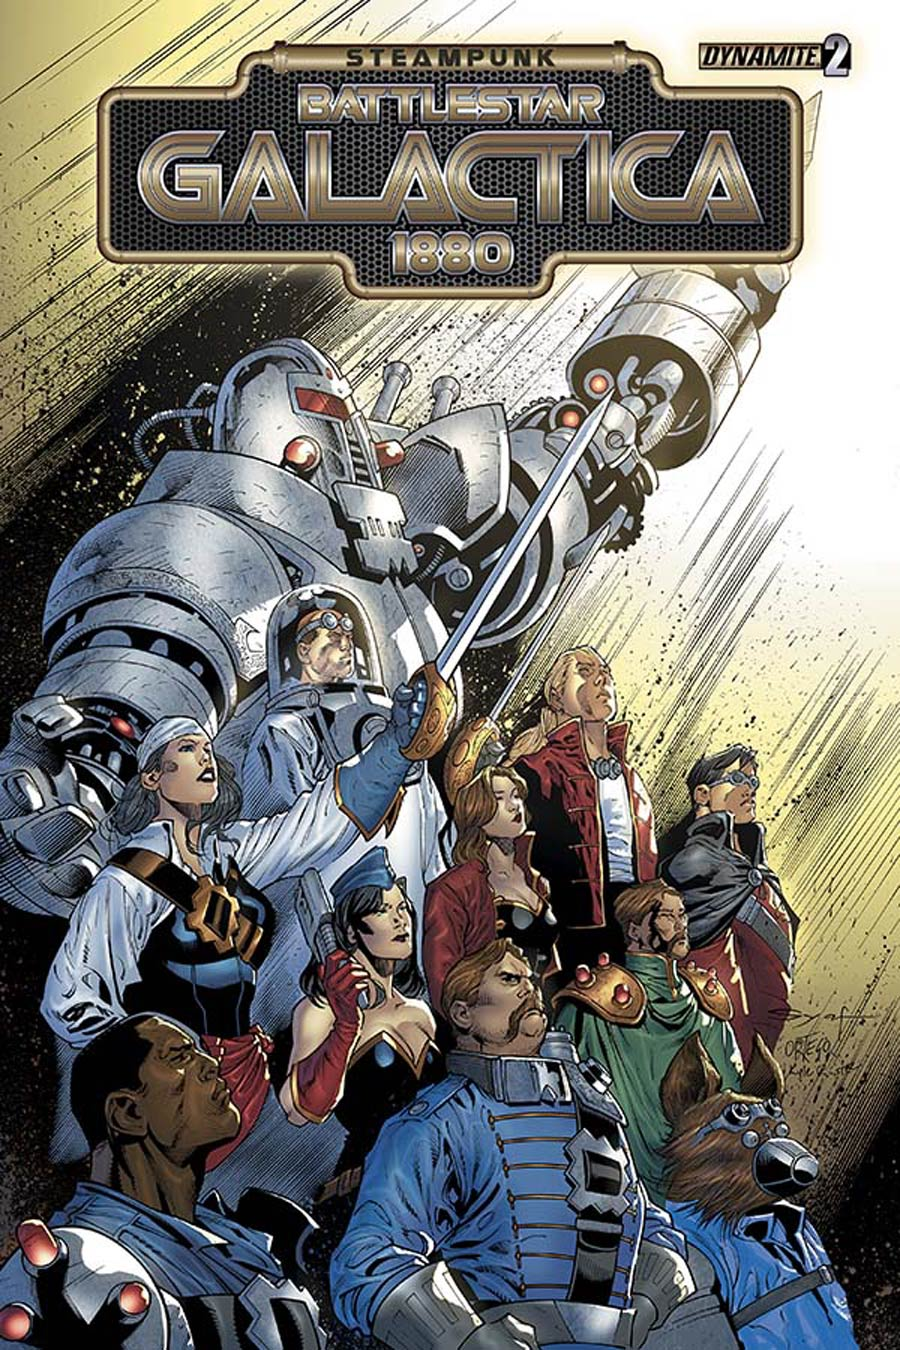 Steampunk Battlestar Galactica 1880 #2 Cover A Regular Ardian Syaf Cover